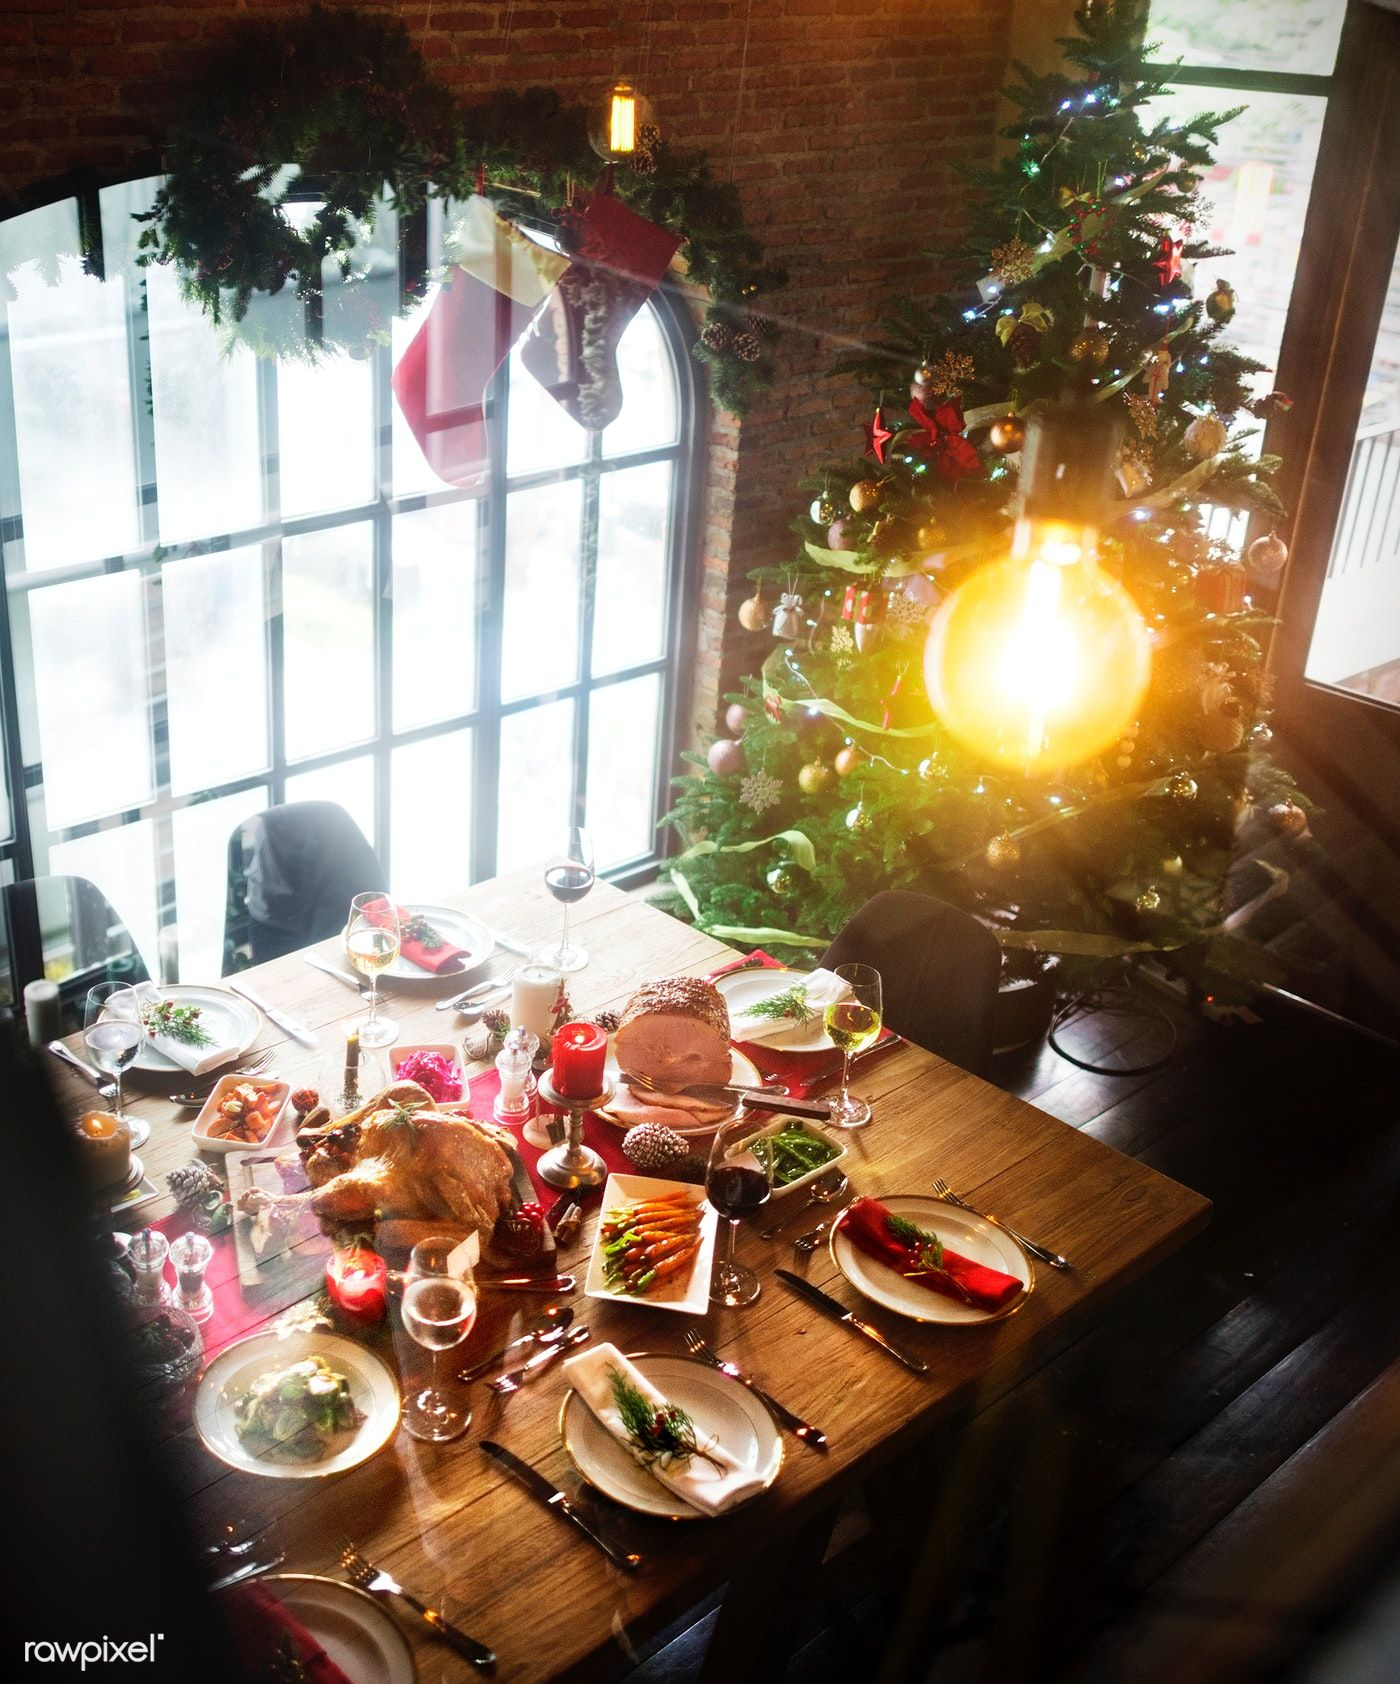 Christmas Dinner Party.Download Premium Image Of Christmas Dinner Party 52830